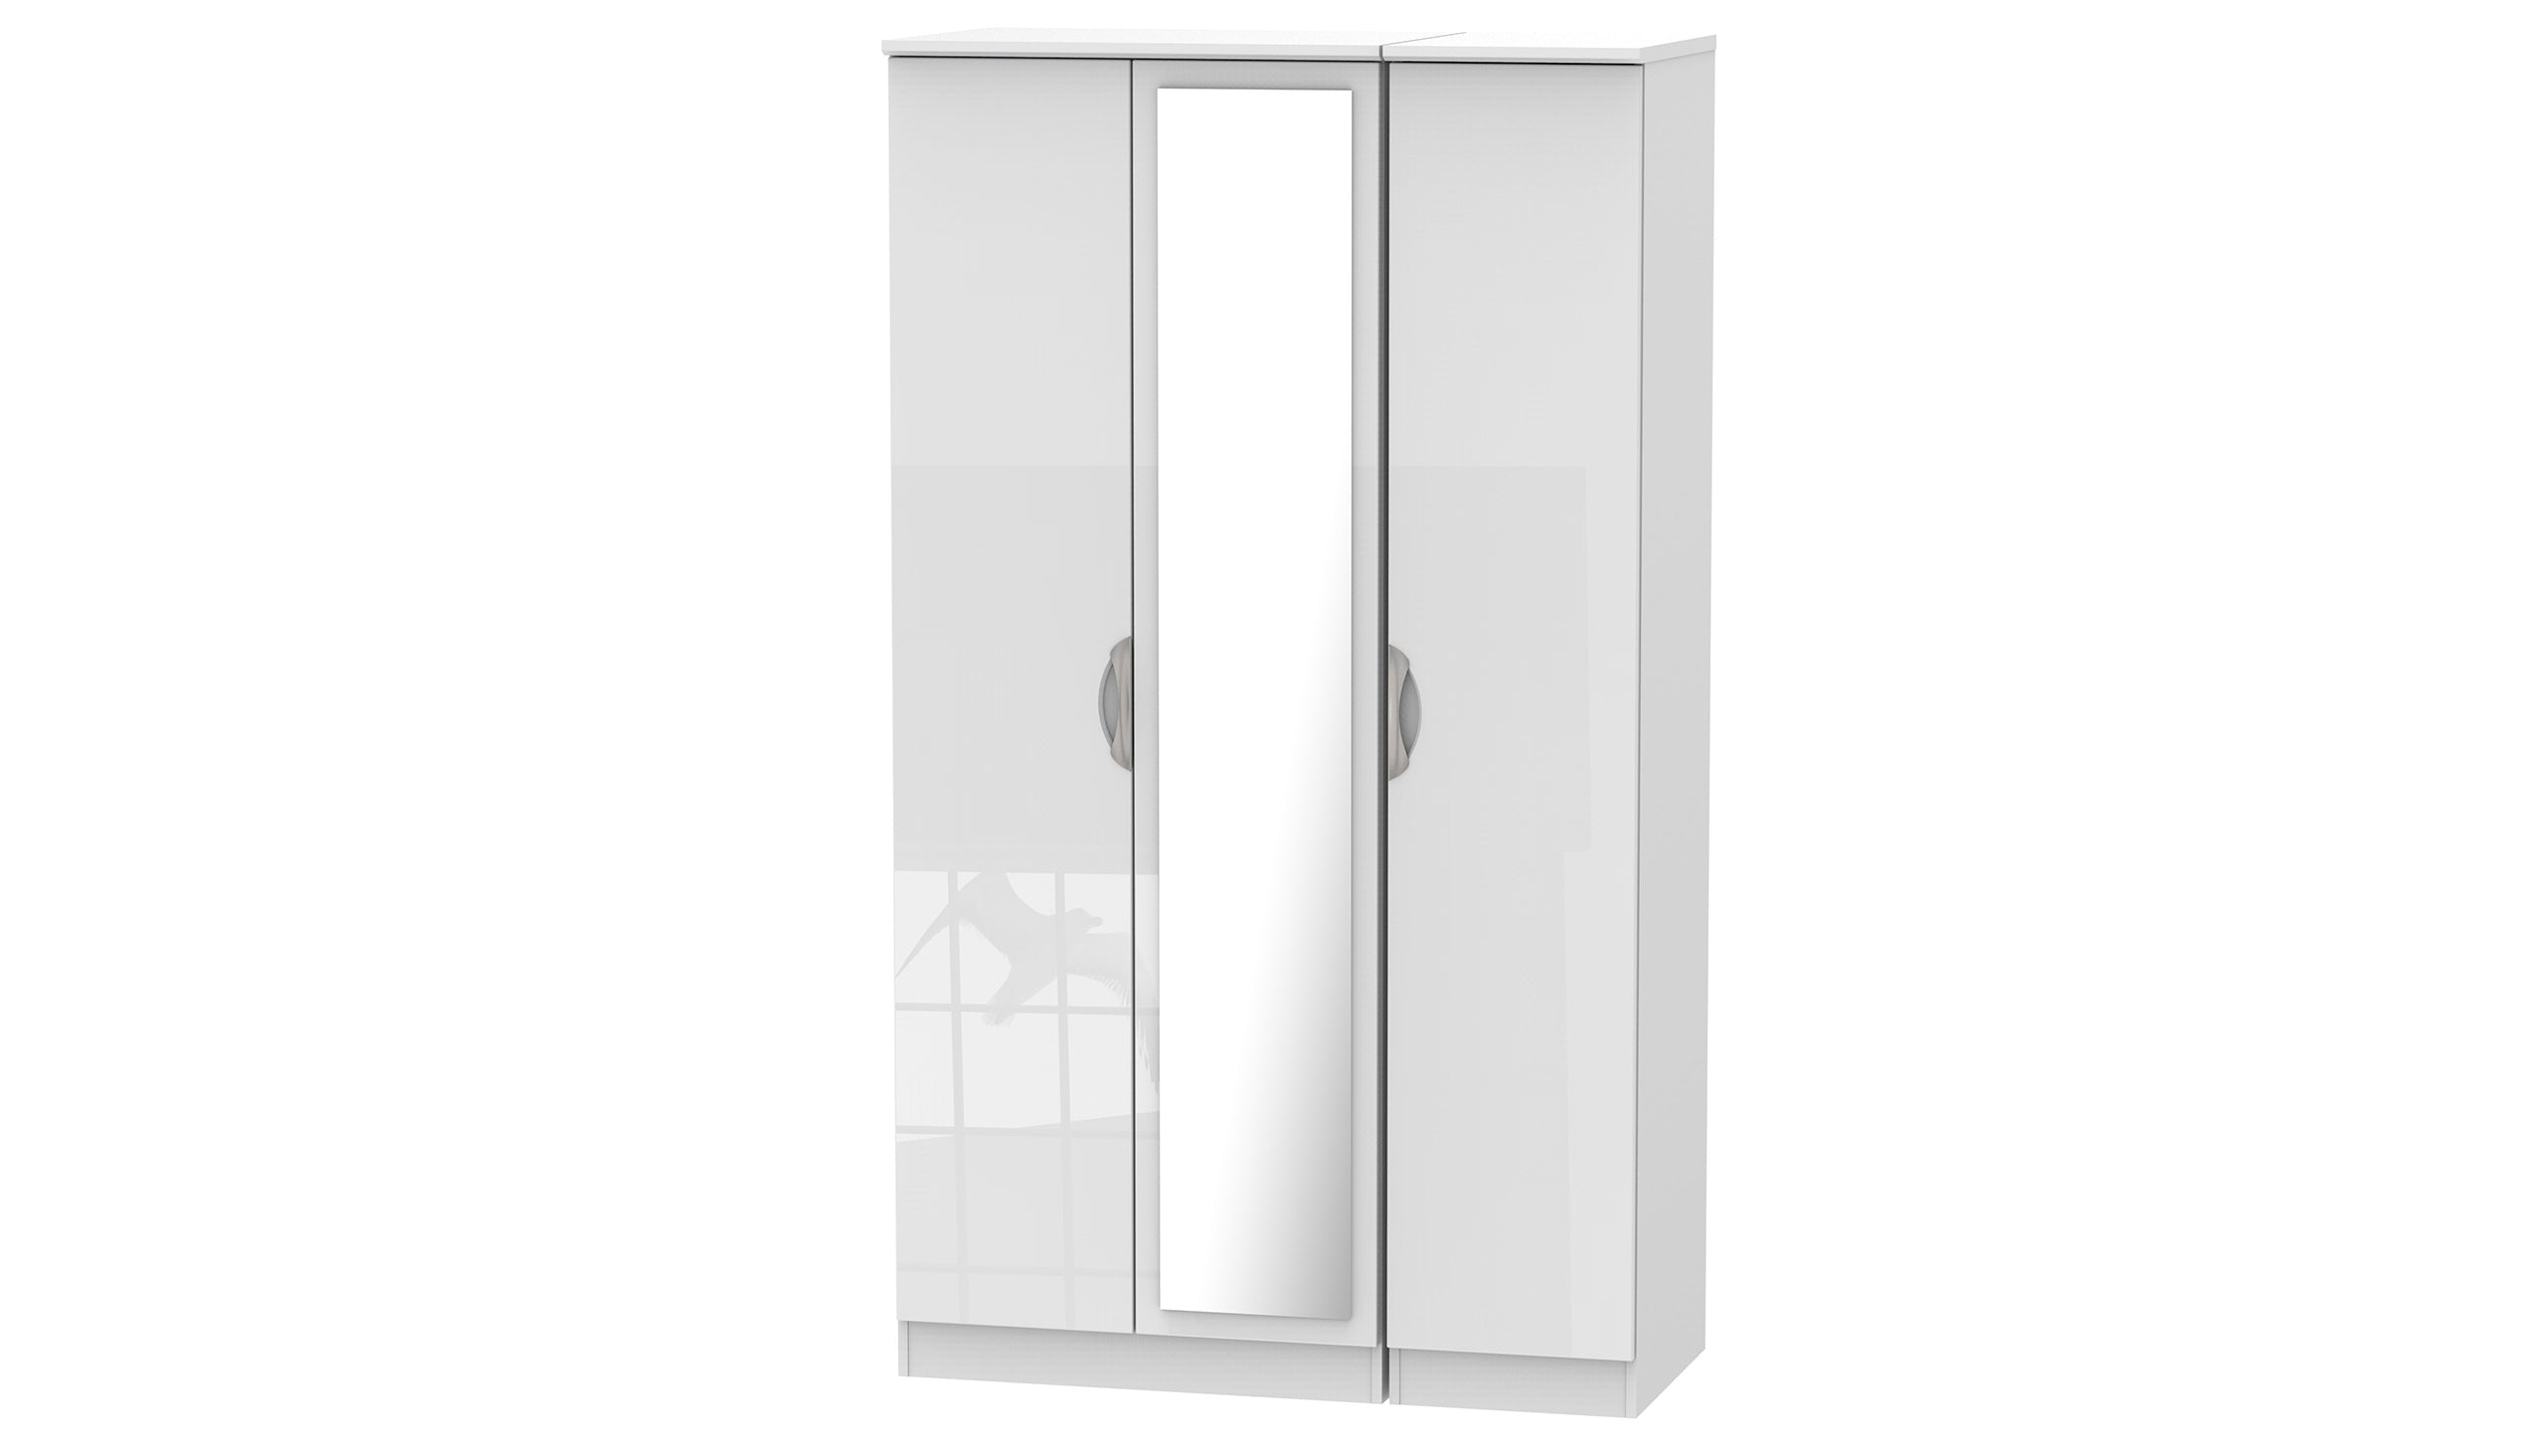 Moda Tall 3 Door 1 Mirror Wardrobe - AHF Furniture & Carpets